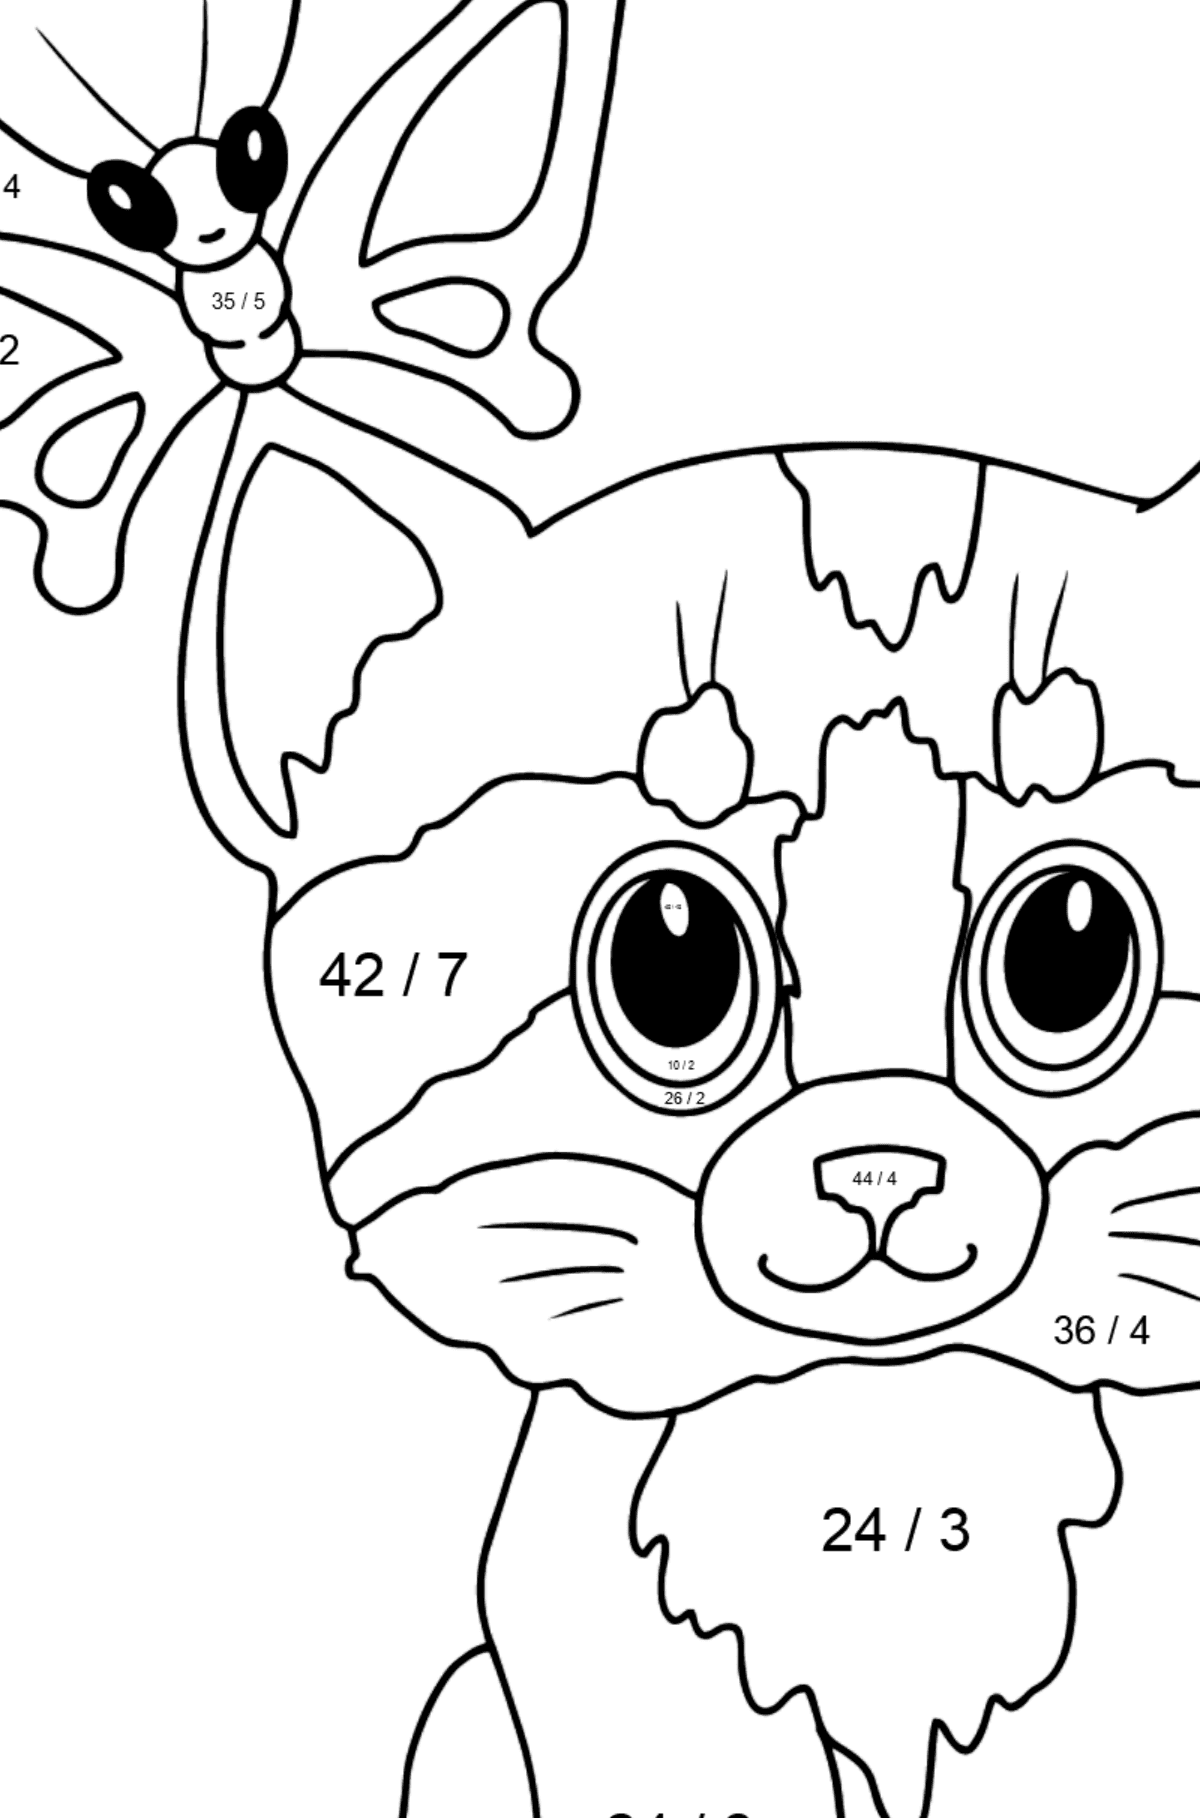 Coloring Page - A Kitten has Caught a Butterfly - Math Coloring - Division for Kids